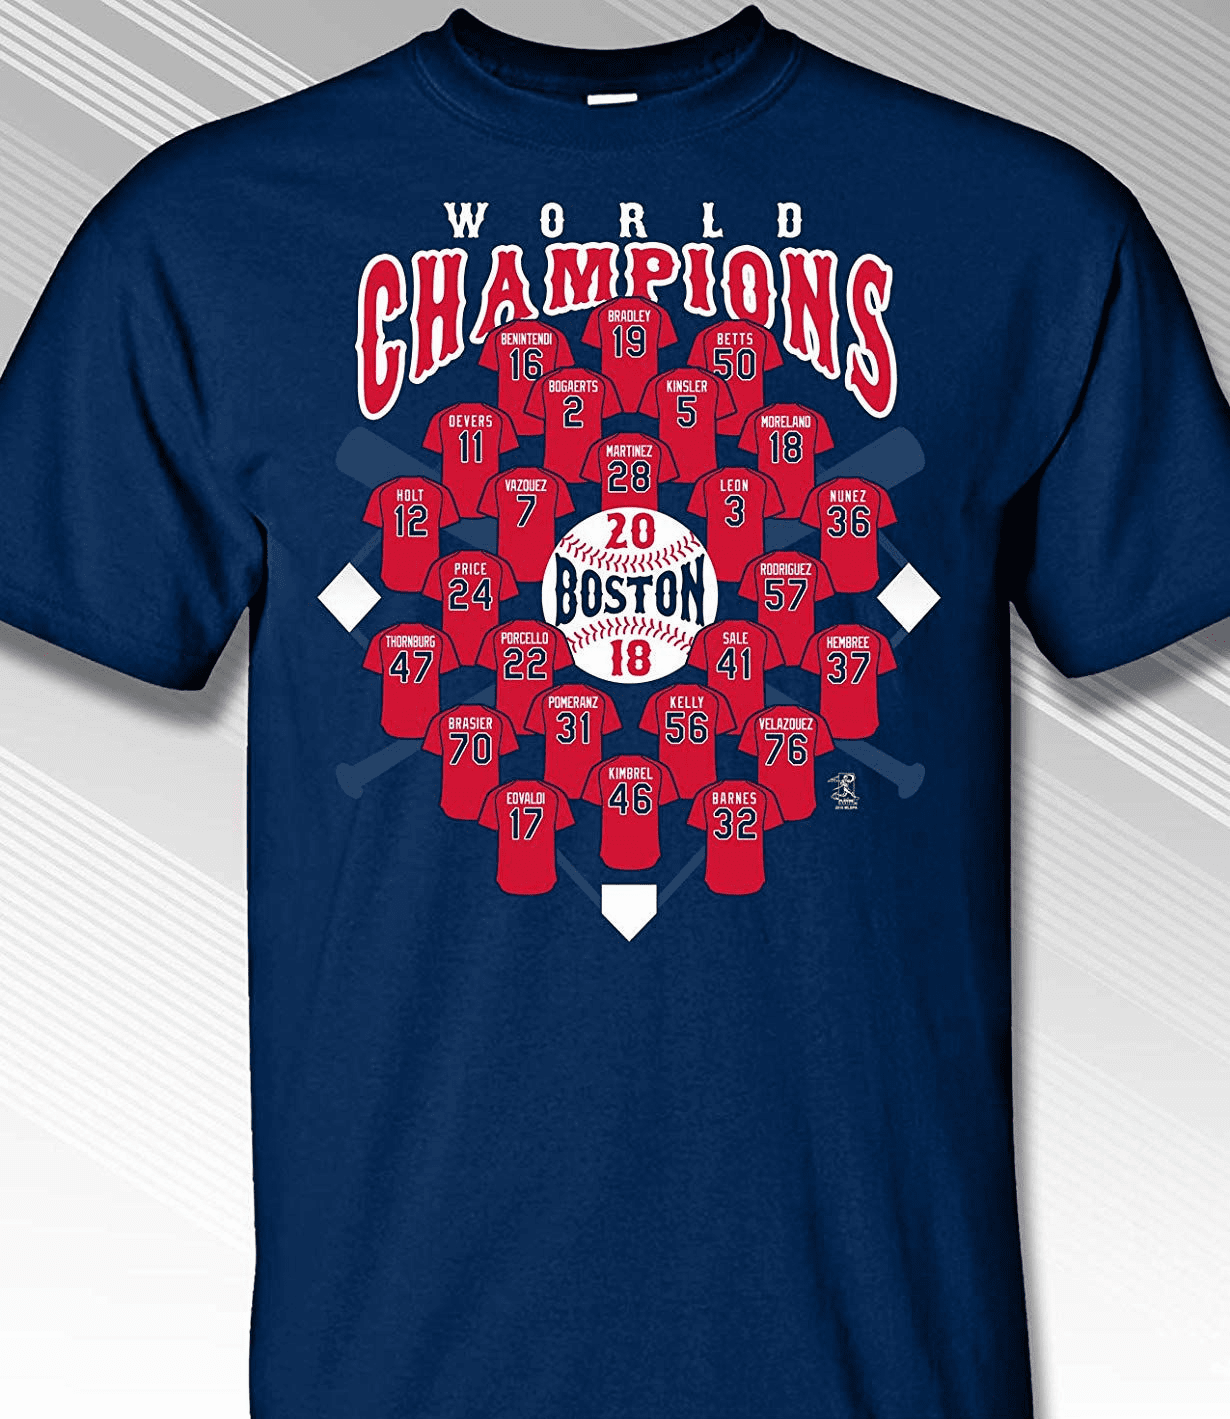 Boston 2018 World Champions Players Jersey T-Shirt<br>Short or Long Sleeve<br>Youth Med to Adult 4X